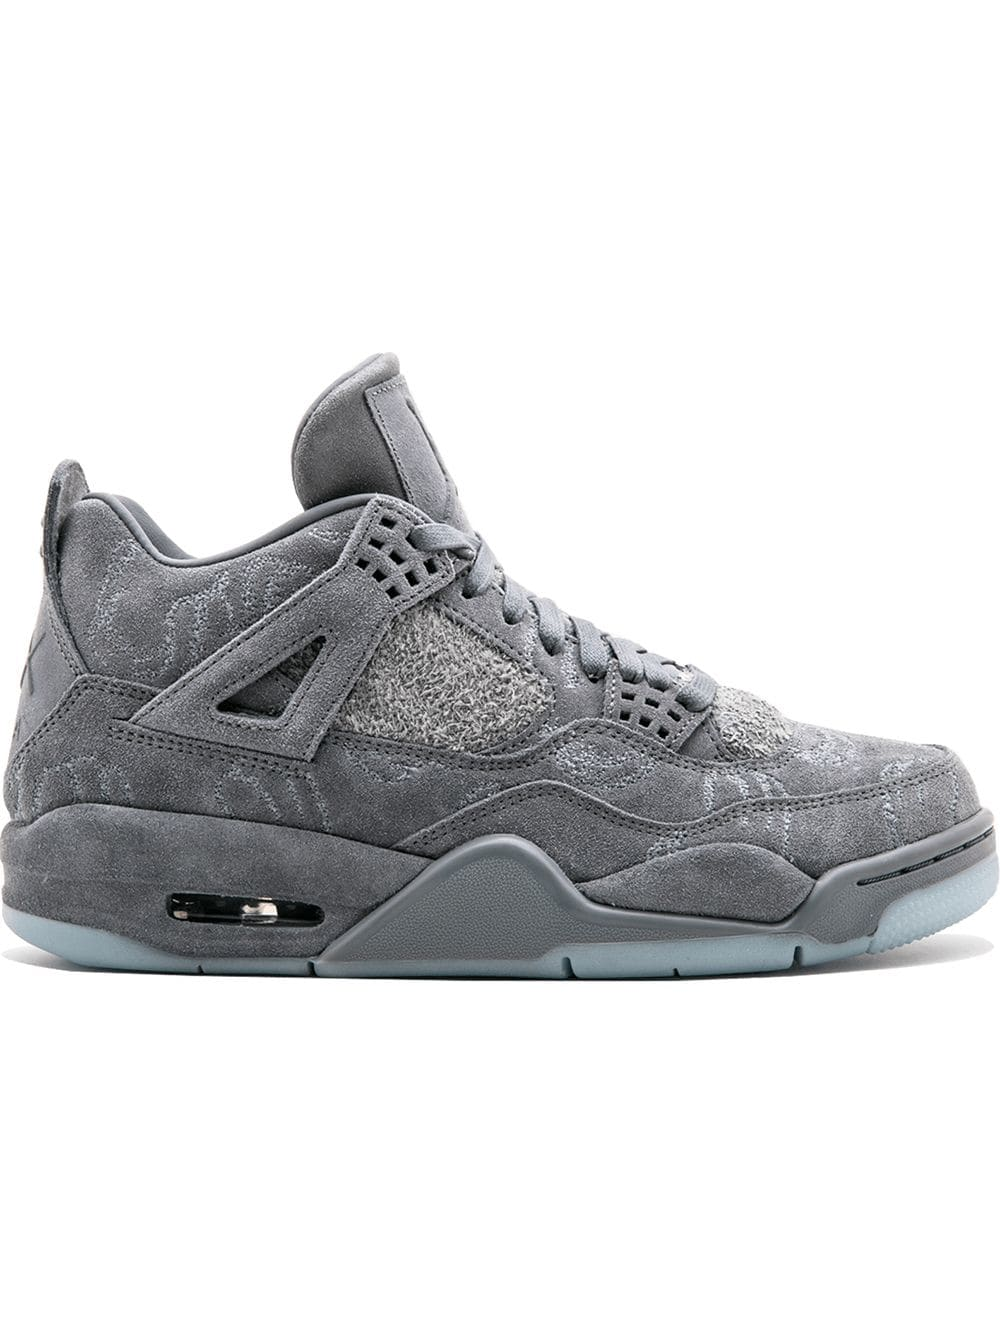 finest selection 991c1 419e1 jordan-air-jordan-4-retro-kaws-grey-farfetch-com-photo.jpg 1541607652